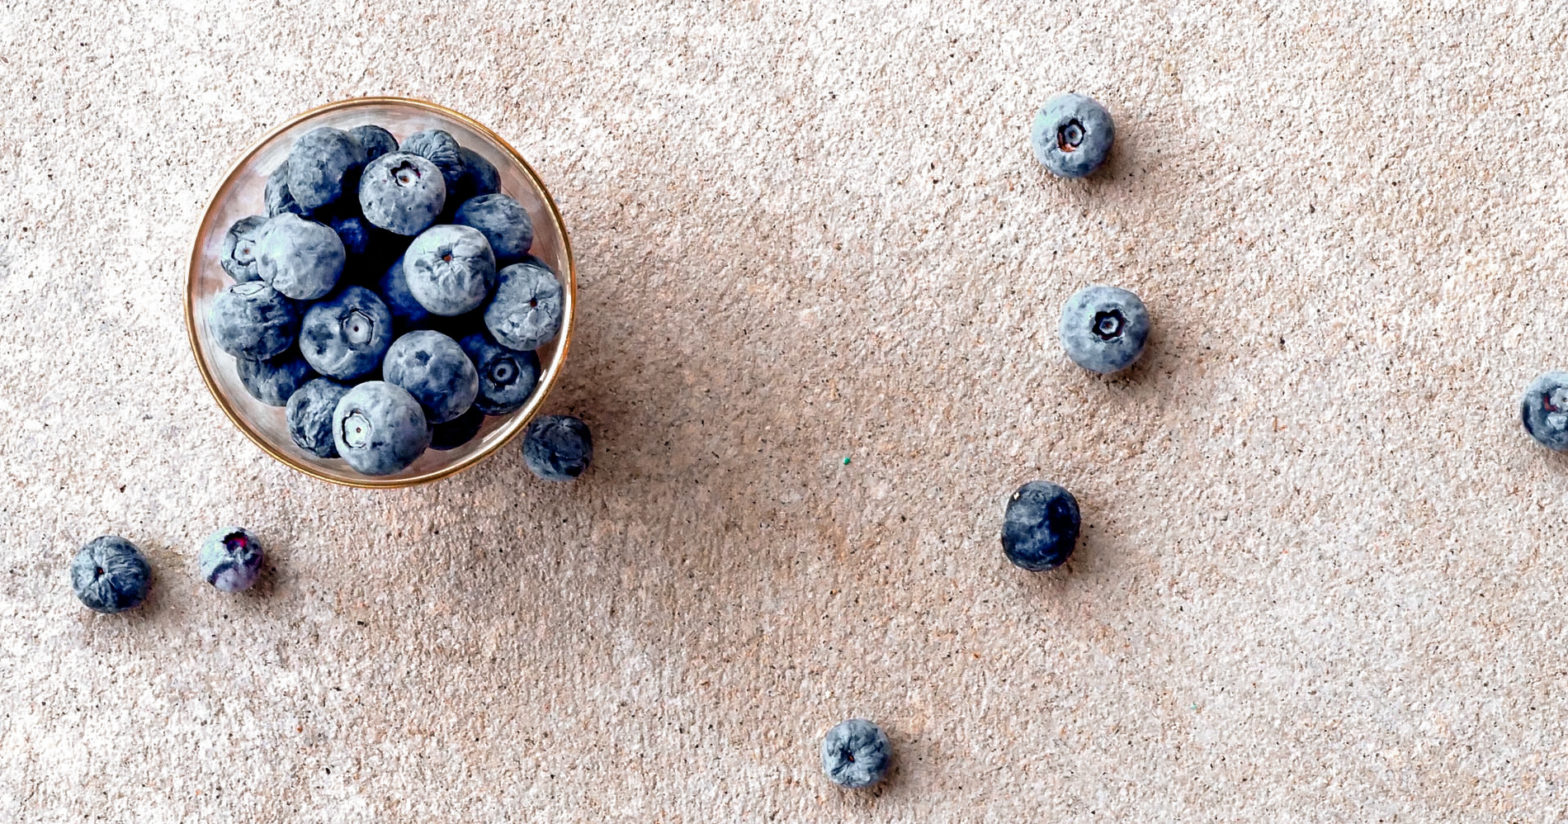 cup_blueberries_filter